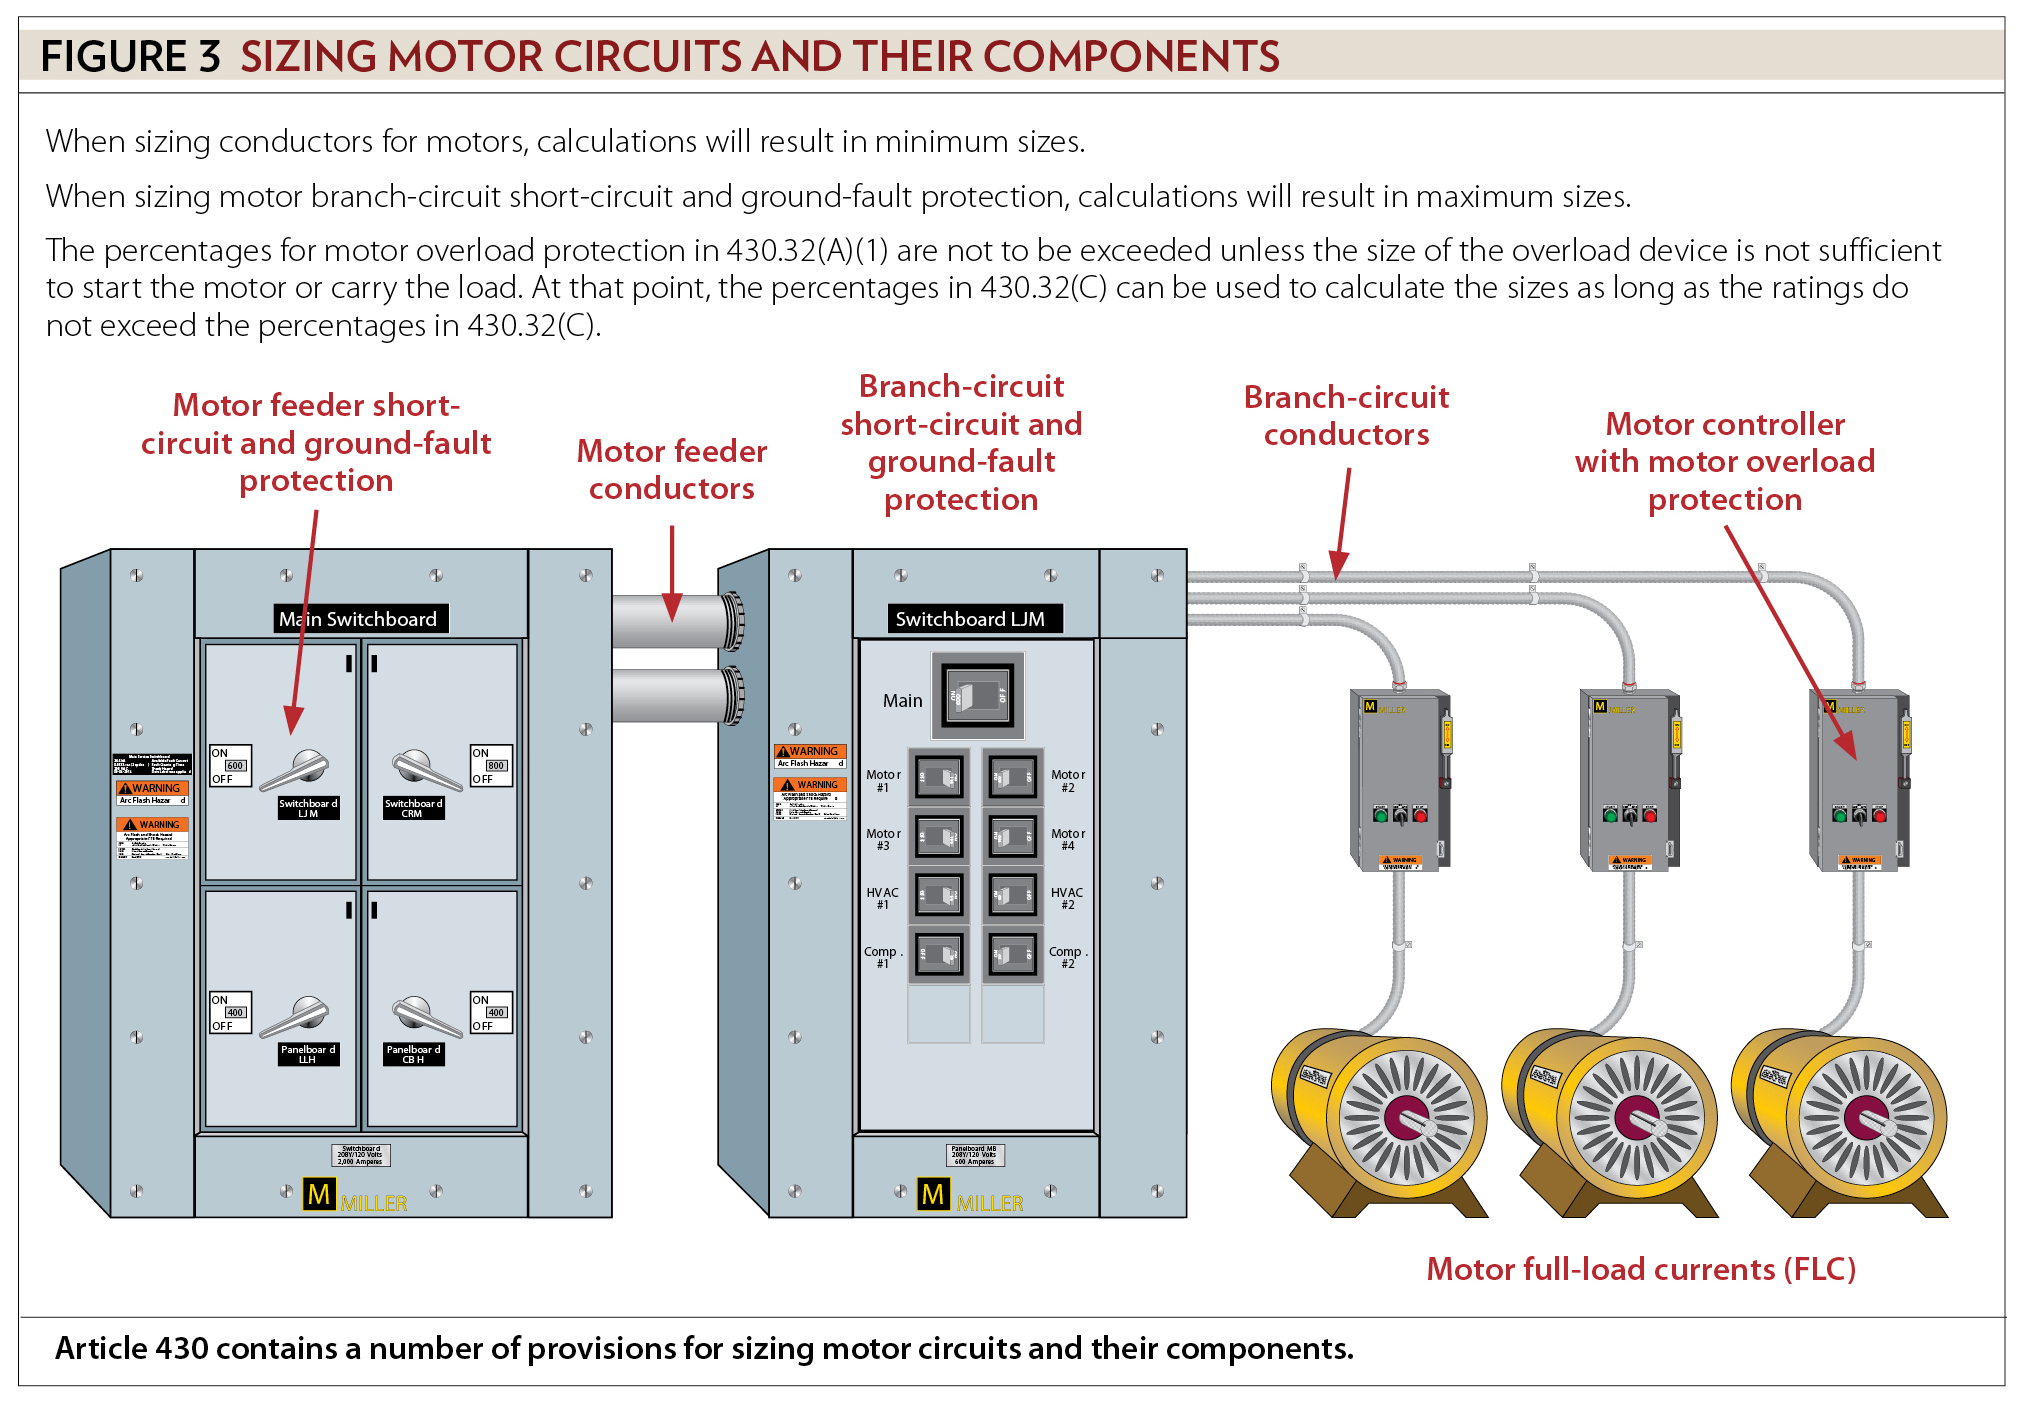 Motors motor circuits and controllers article 430 electrical some but not all motor conductor and component sizing is to find the minimum size some provisions in article 430 are there to ensure the conductor or greentooth Gallery